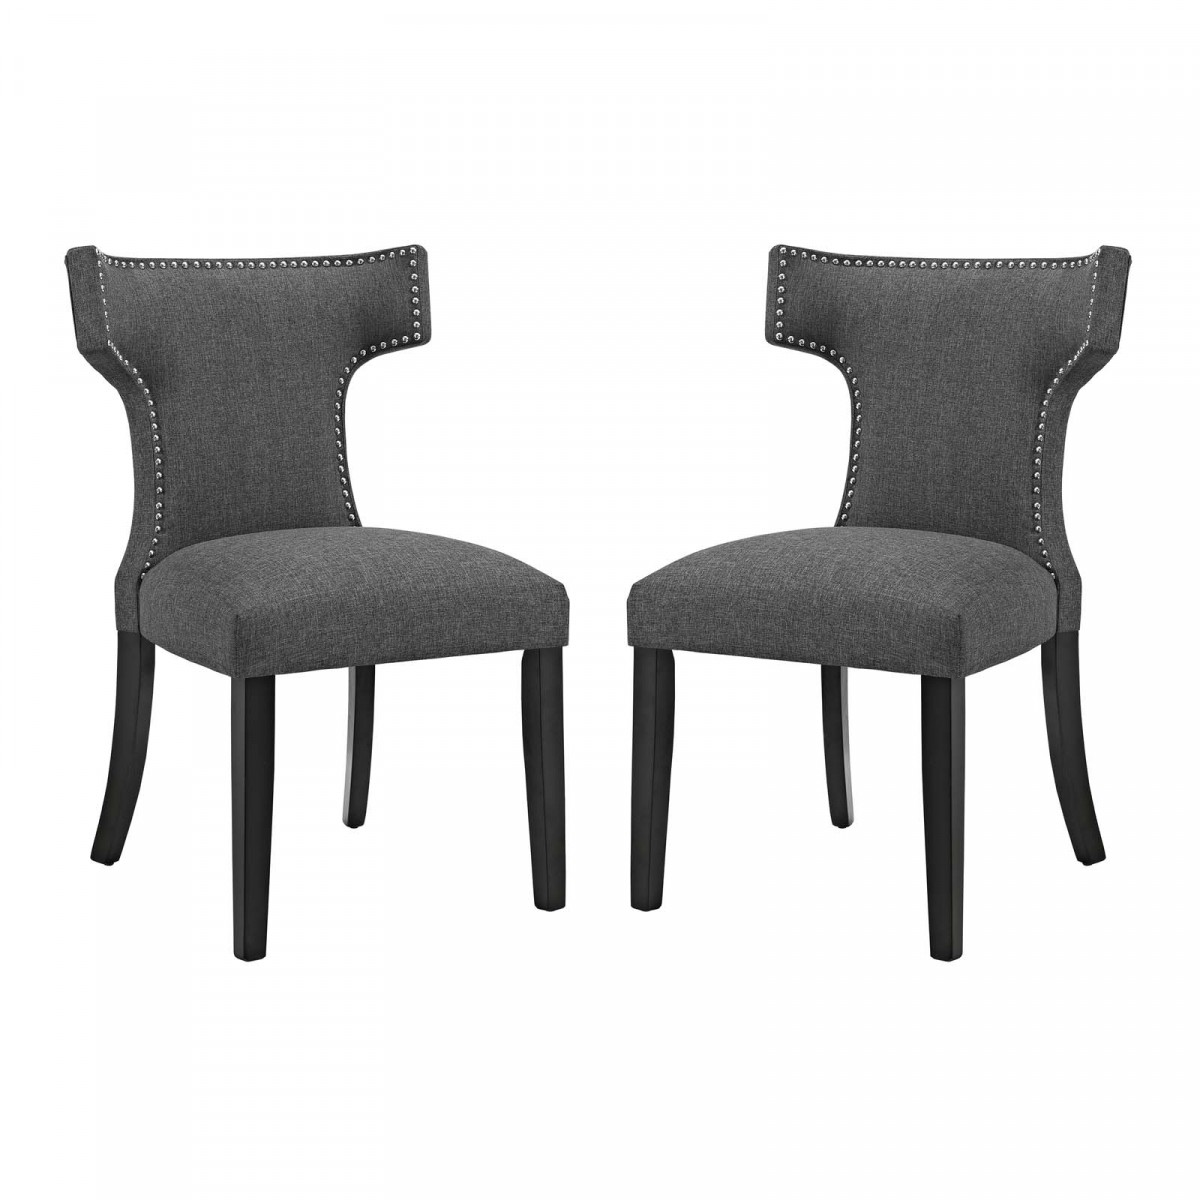 Modway Curve Gray Fabric Dining Side Chair